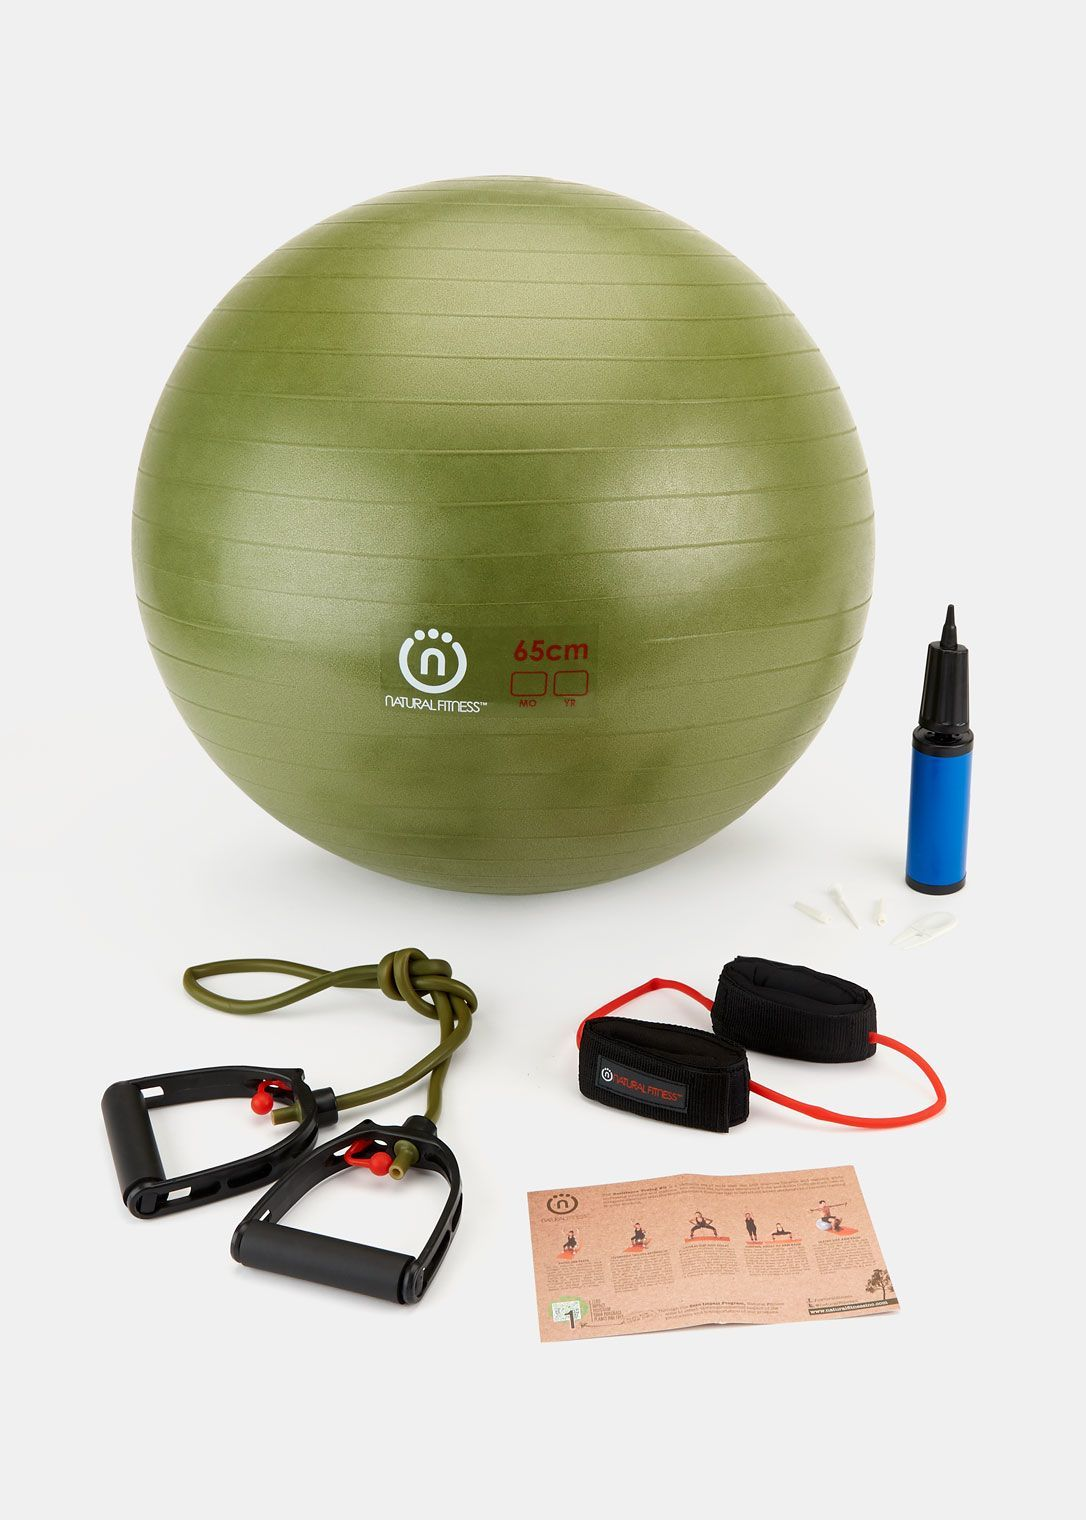 At-Home Resistance Toning Kit from Rodale's. #fitness #toning #ecofriendly